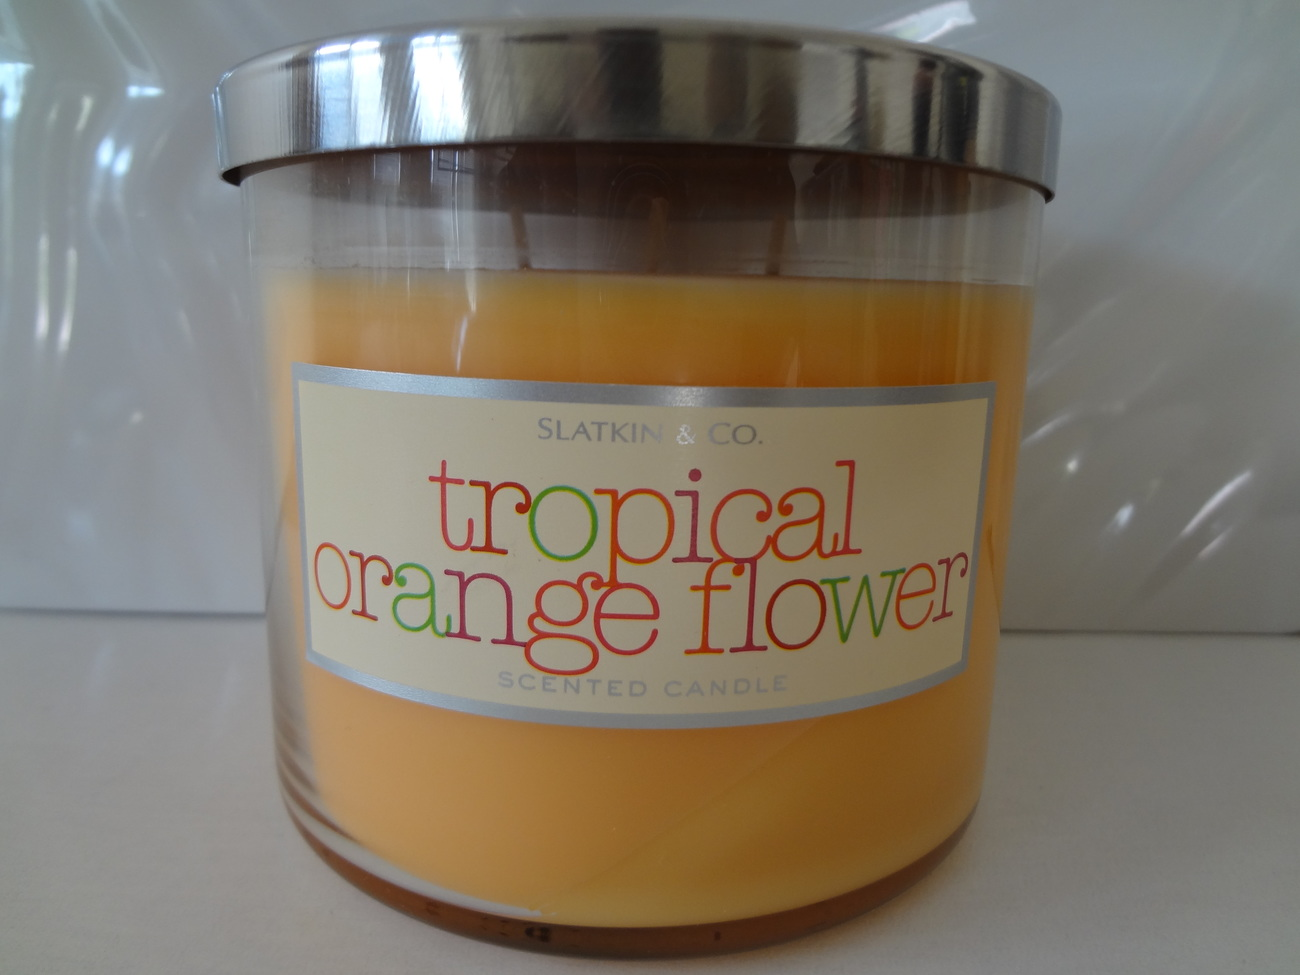 Bath body works slatkin co tropical orange flower for Bath and body works scents best seller